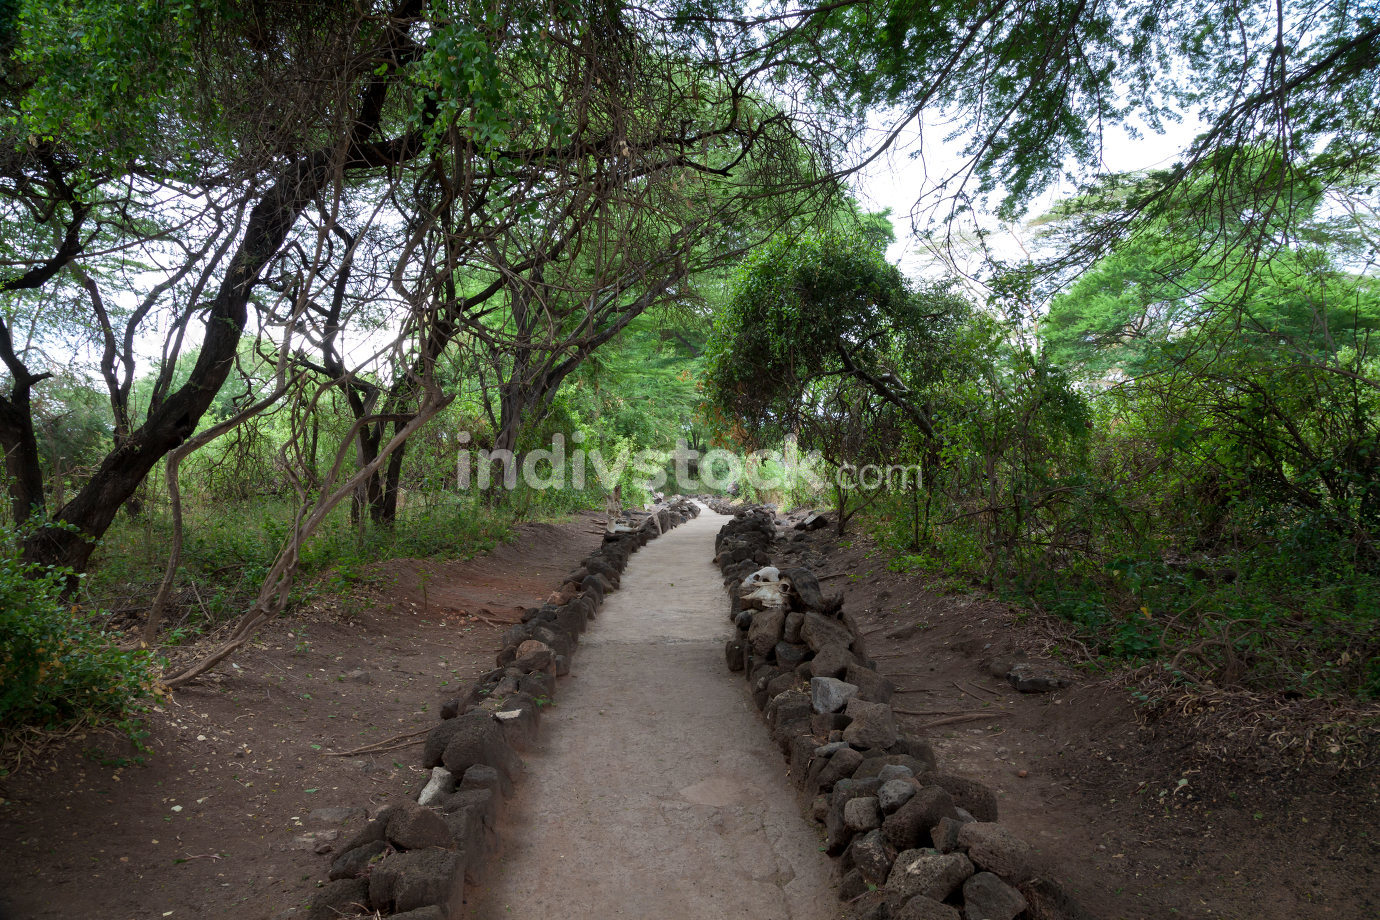 Path in Mzima Springs, scenery of a oasis in Kenya